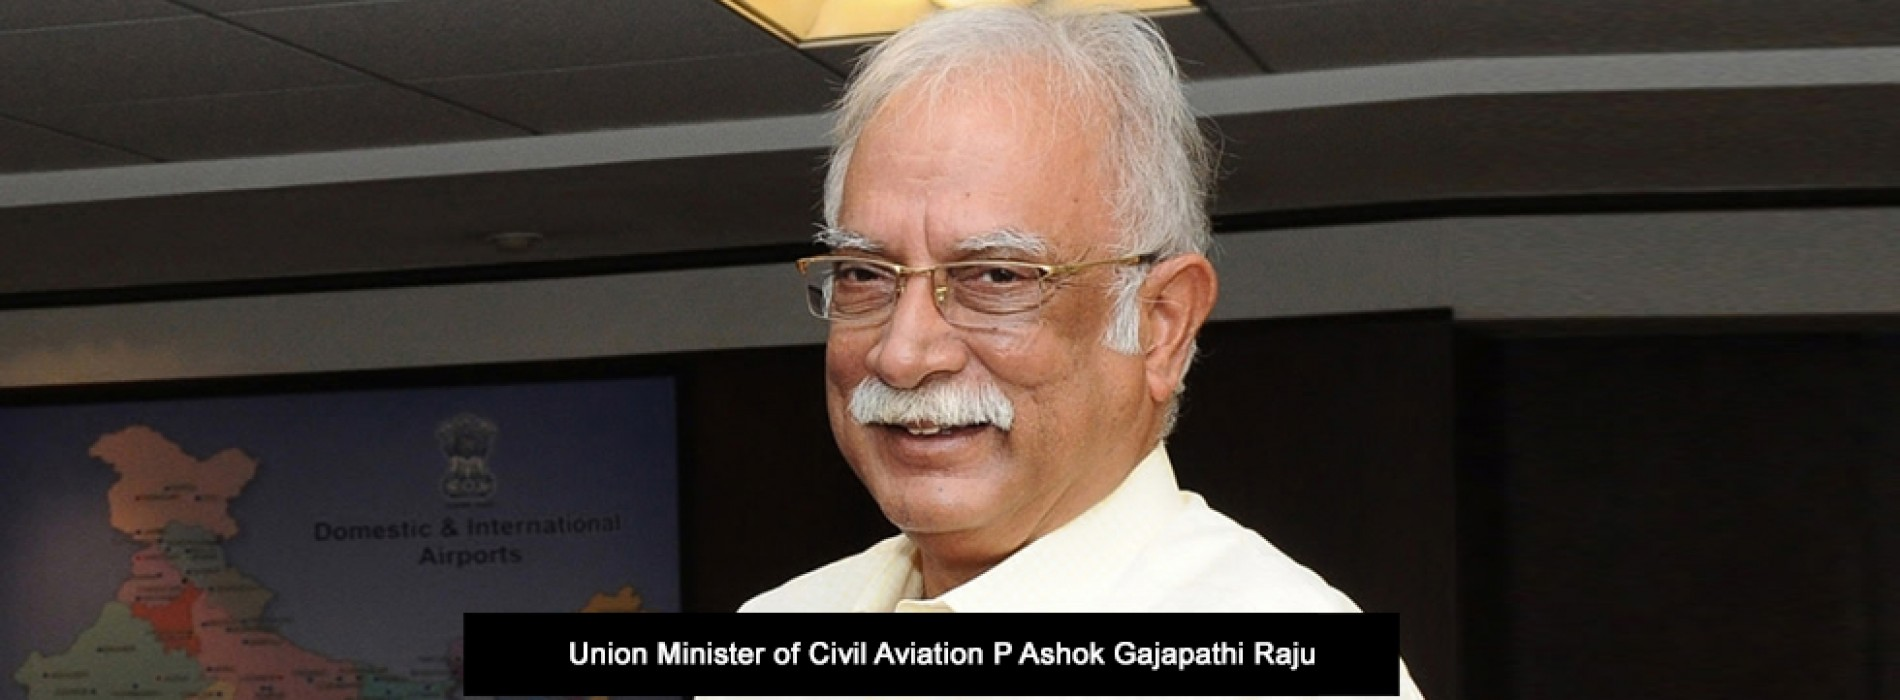 India is the third largest in air passenger traffic says Minister